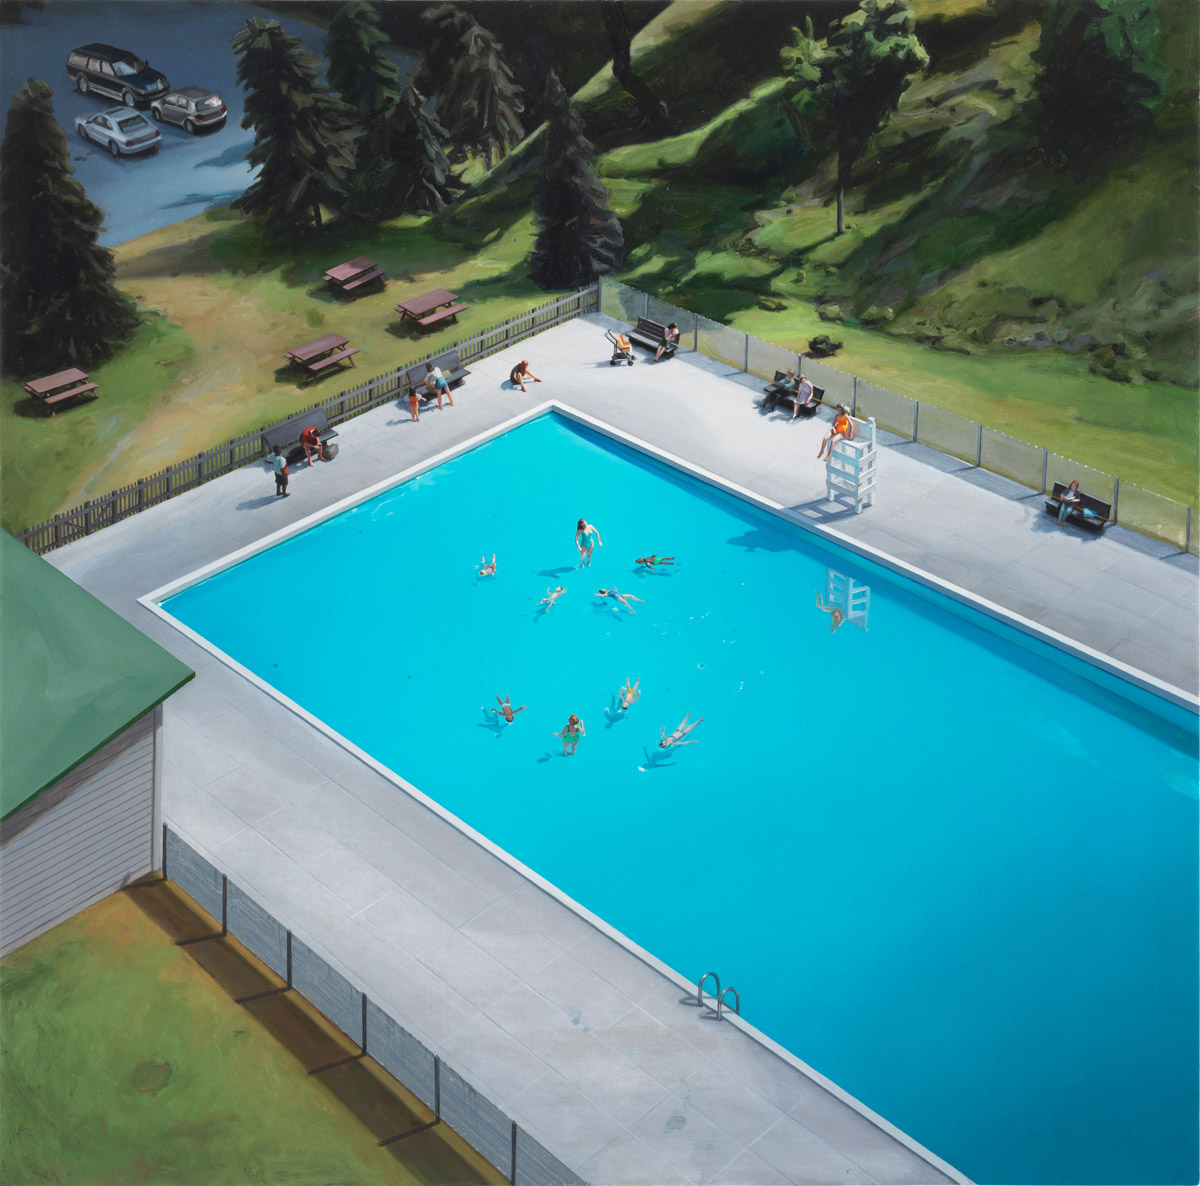 Artist Amy Bennett Paints Suburban America With the Help of